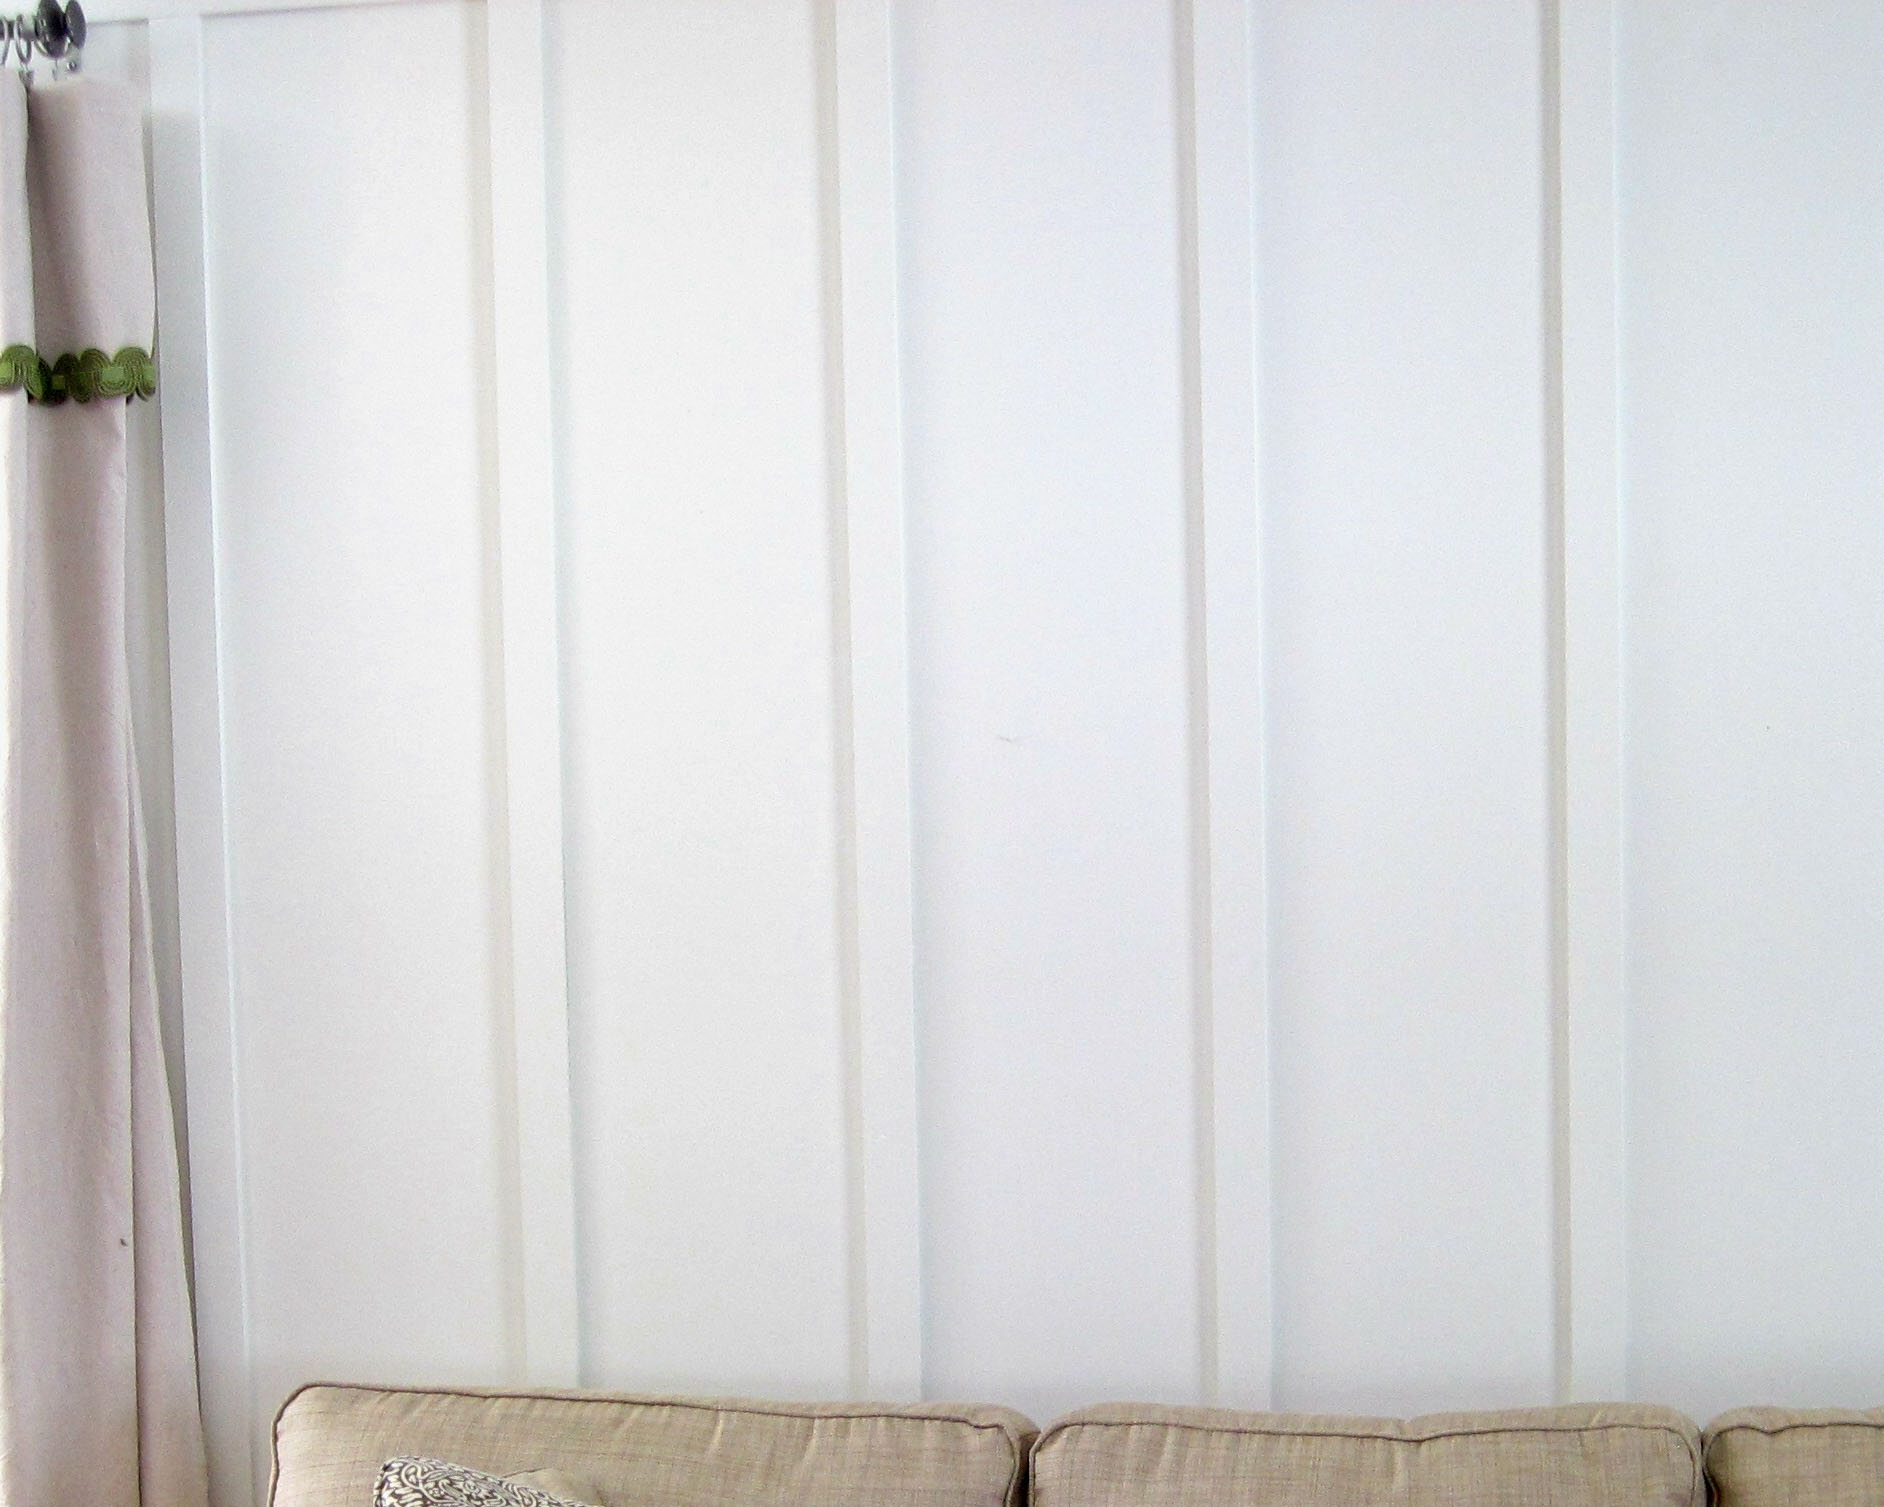 INCORRECT - Furniture and window is not visible, no paper on wall